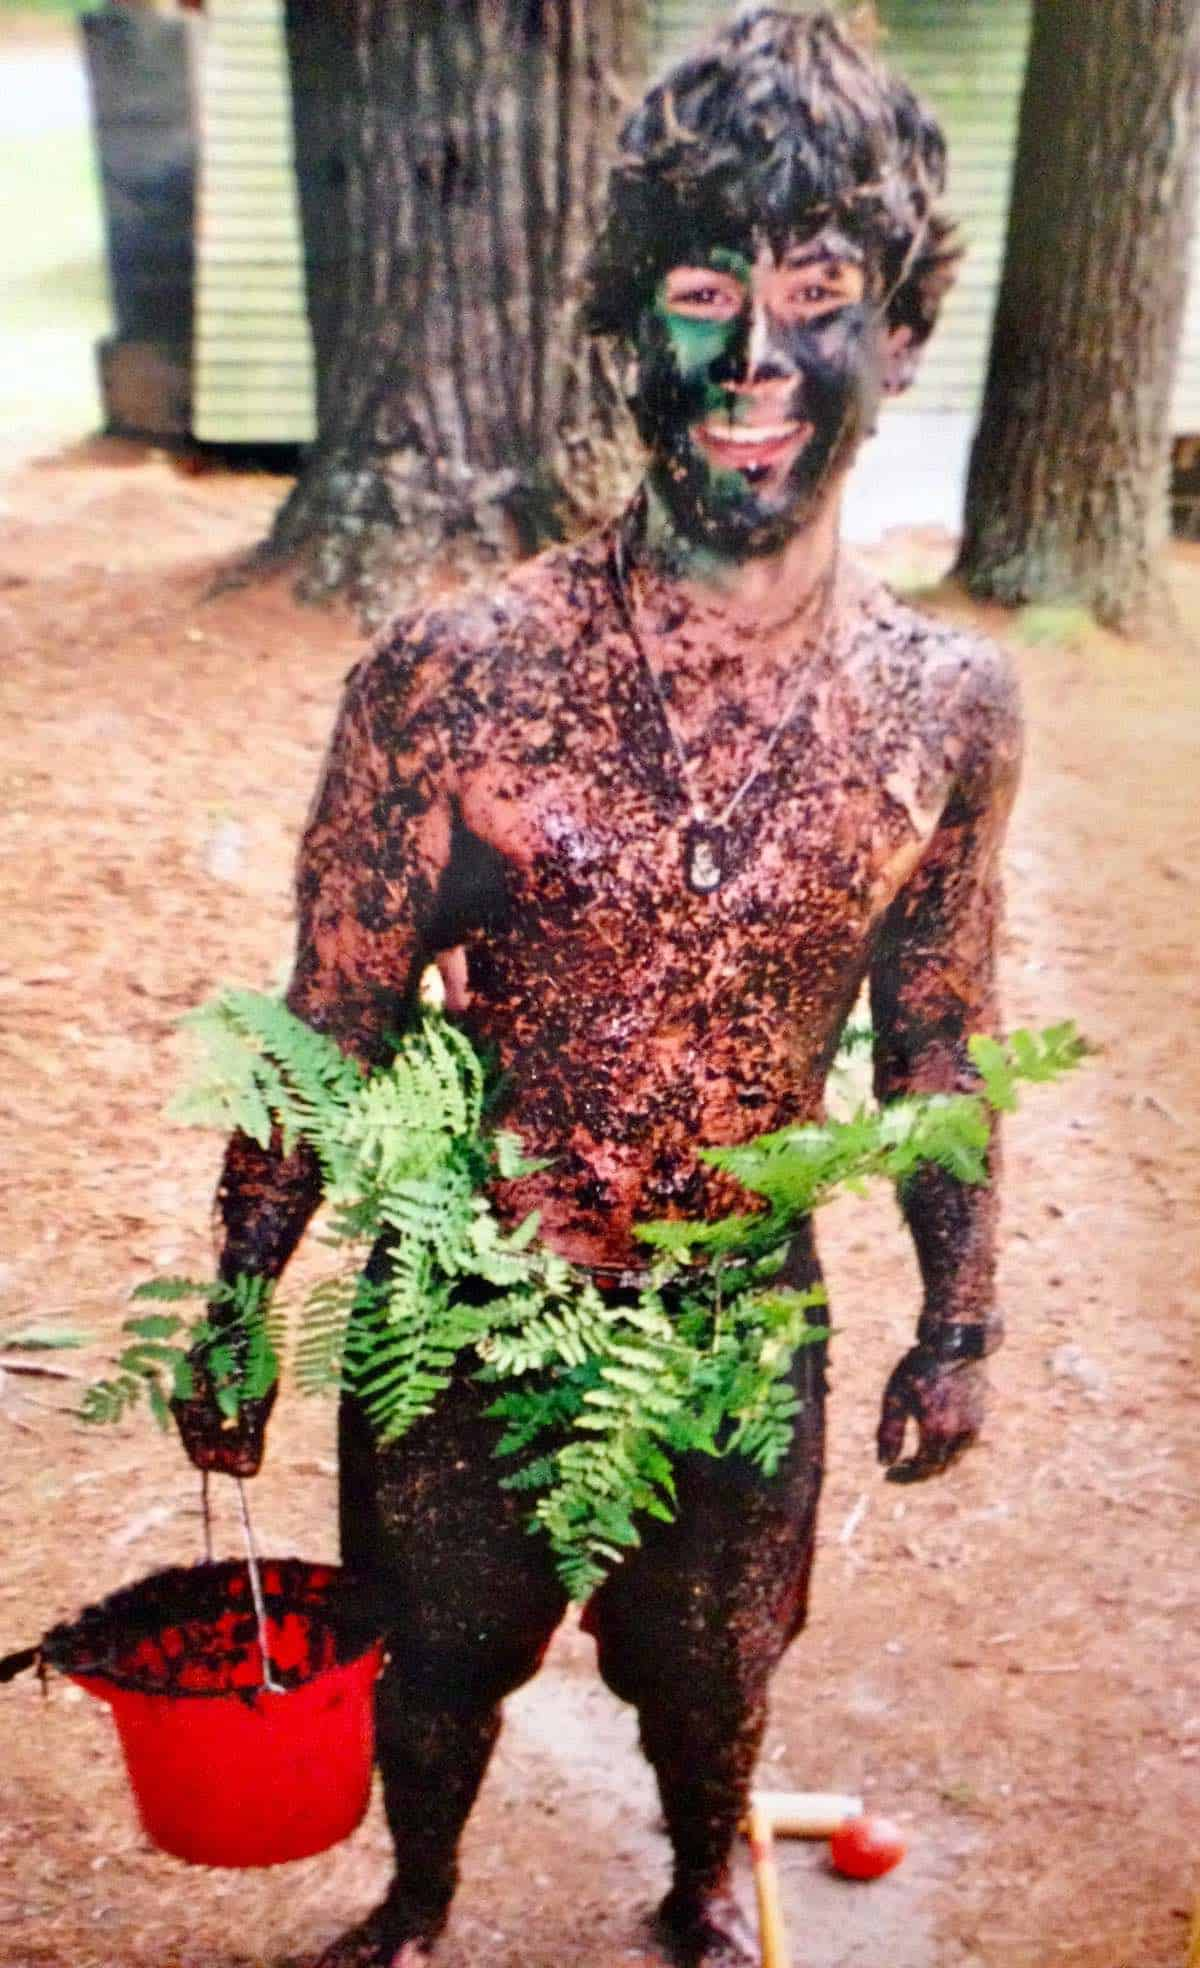 Will drenched in mud camouflage